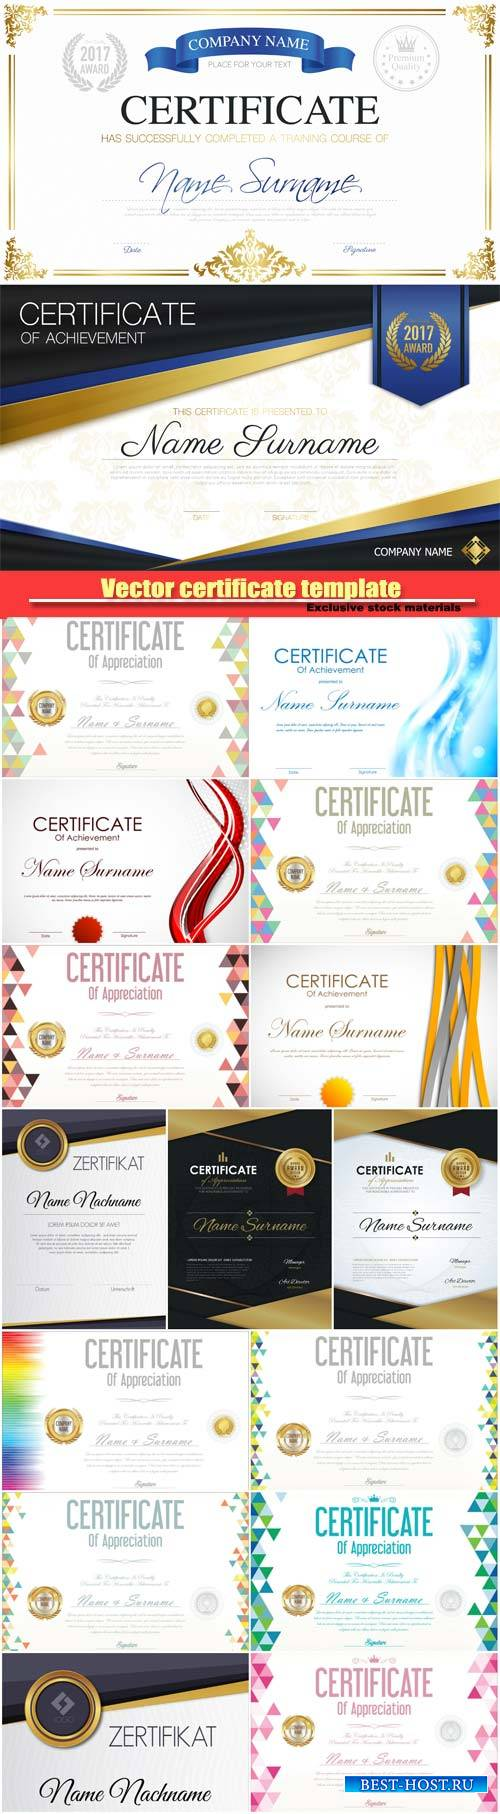 Certificate vector retro design template